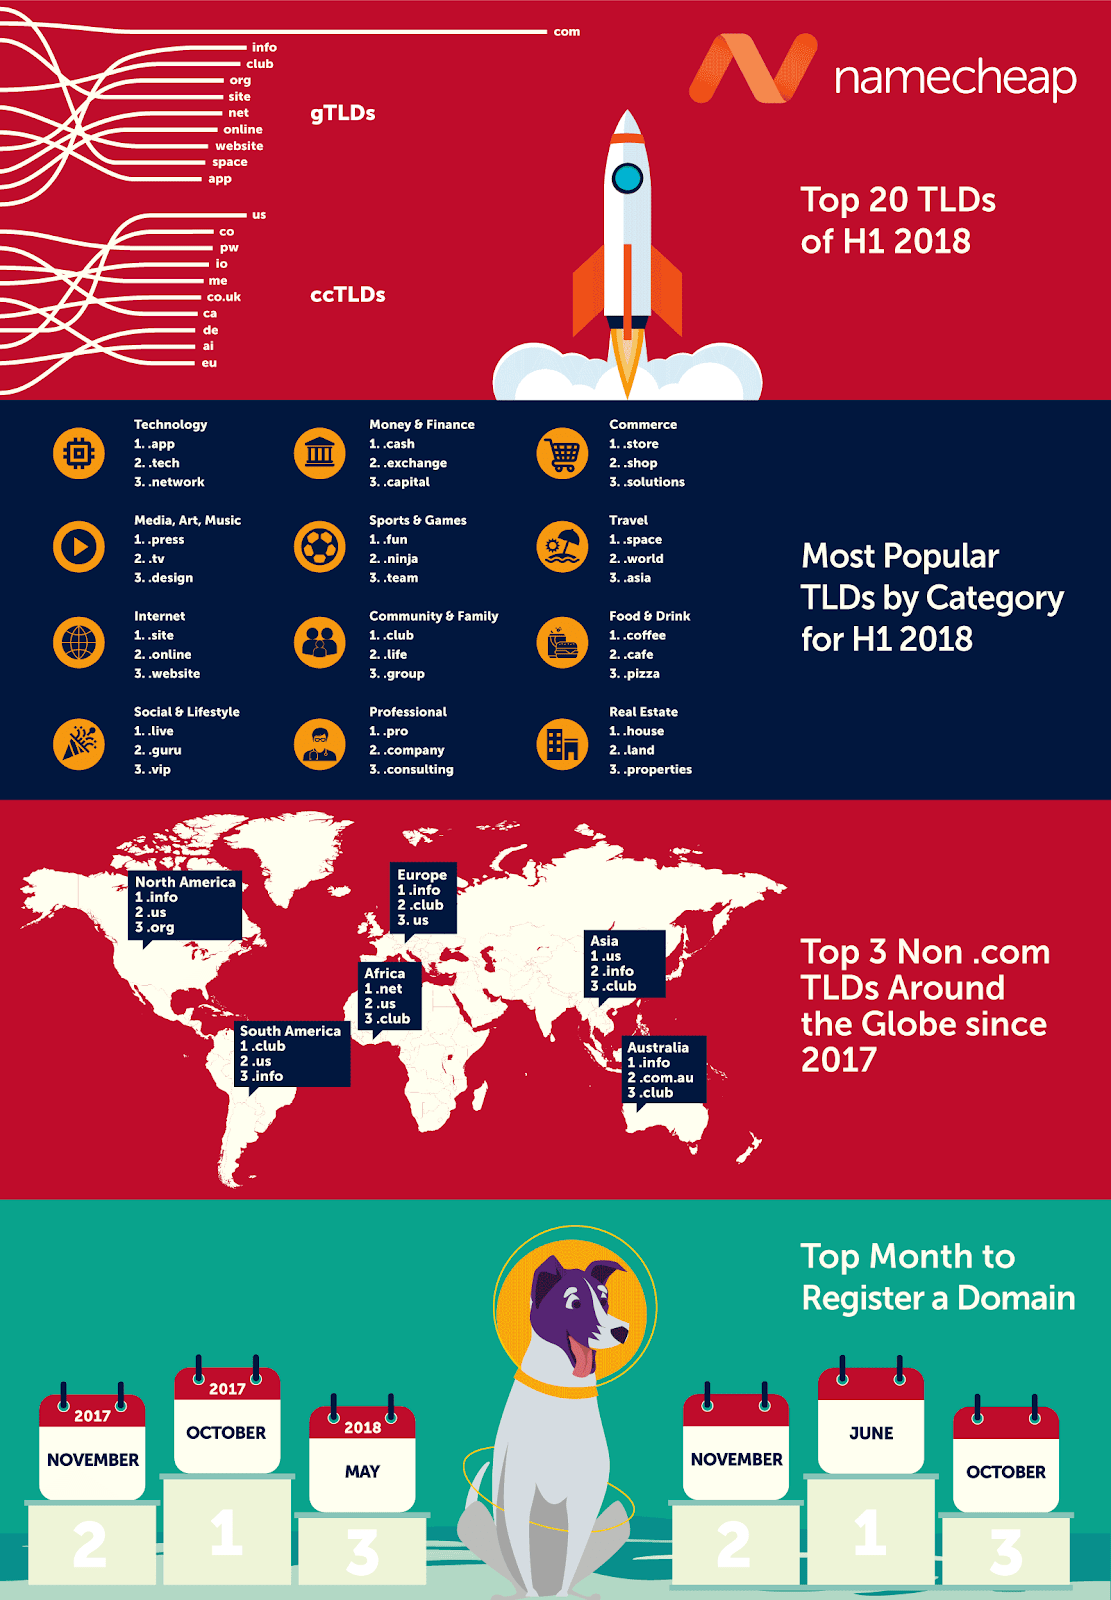 Namecheap 2018 TLD report infographic